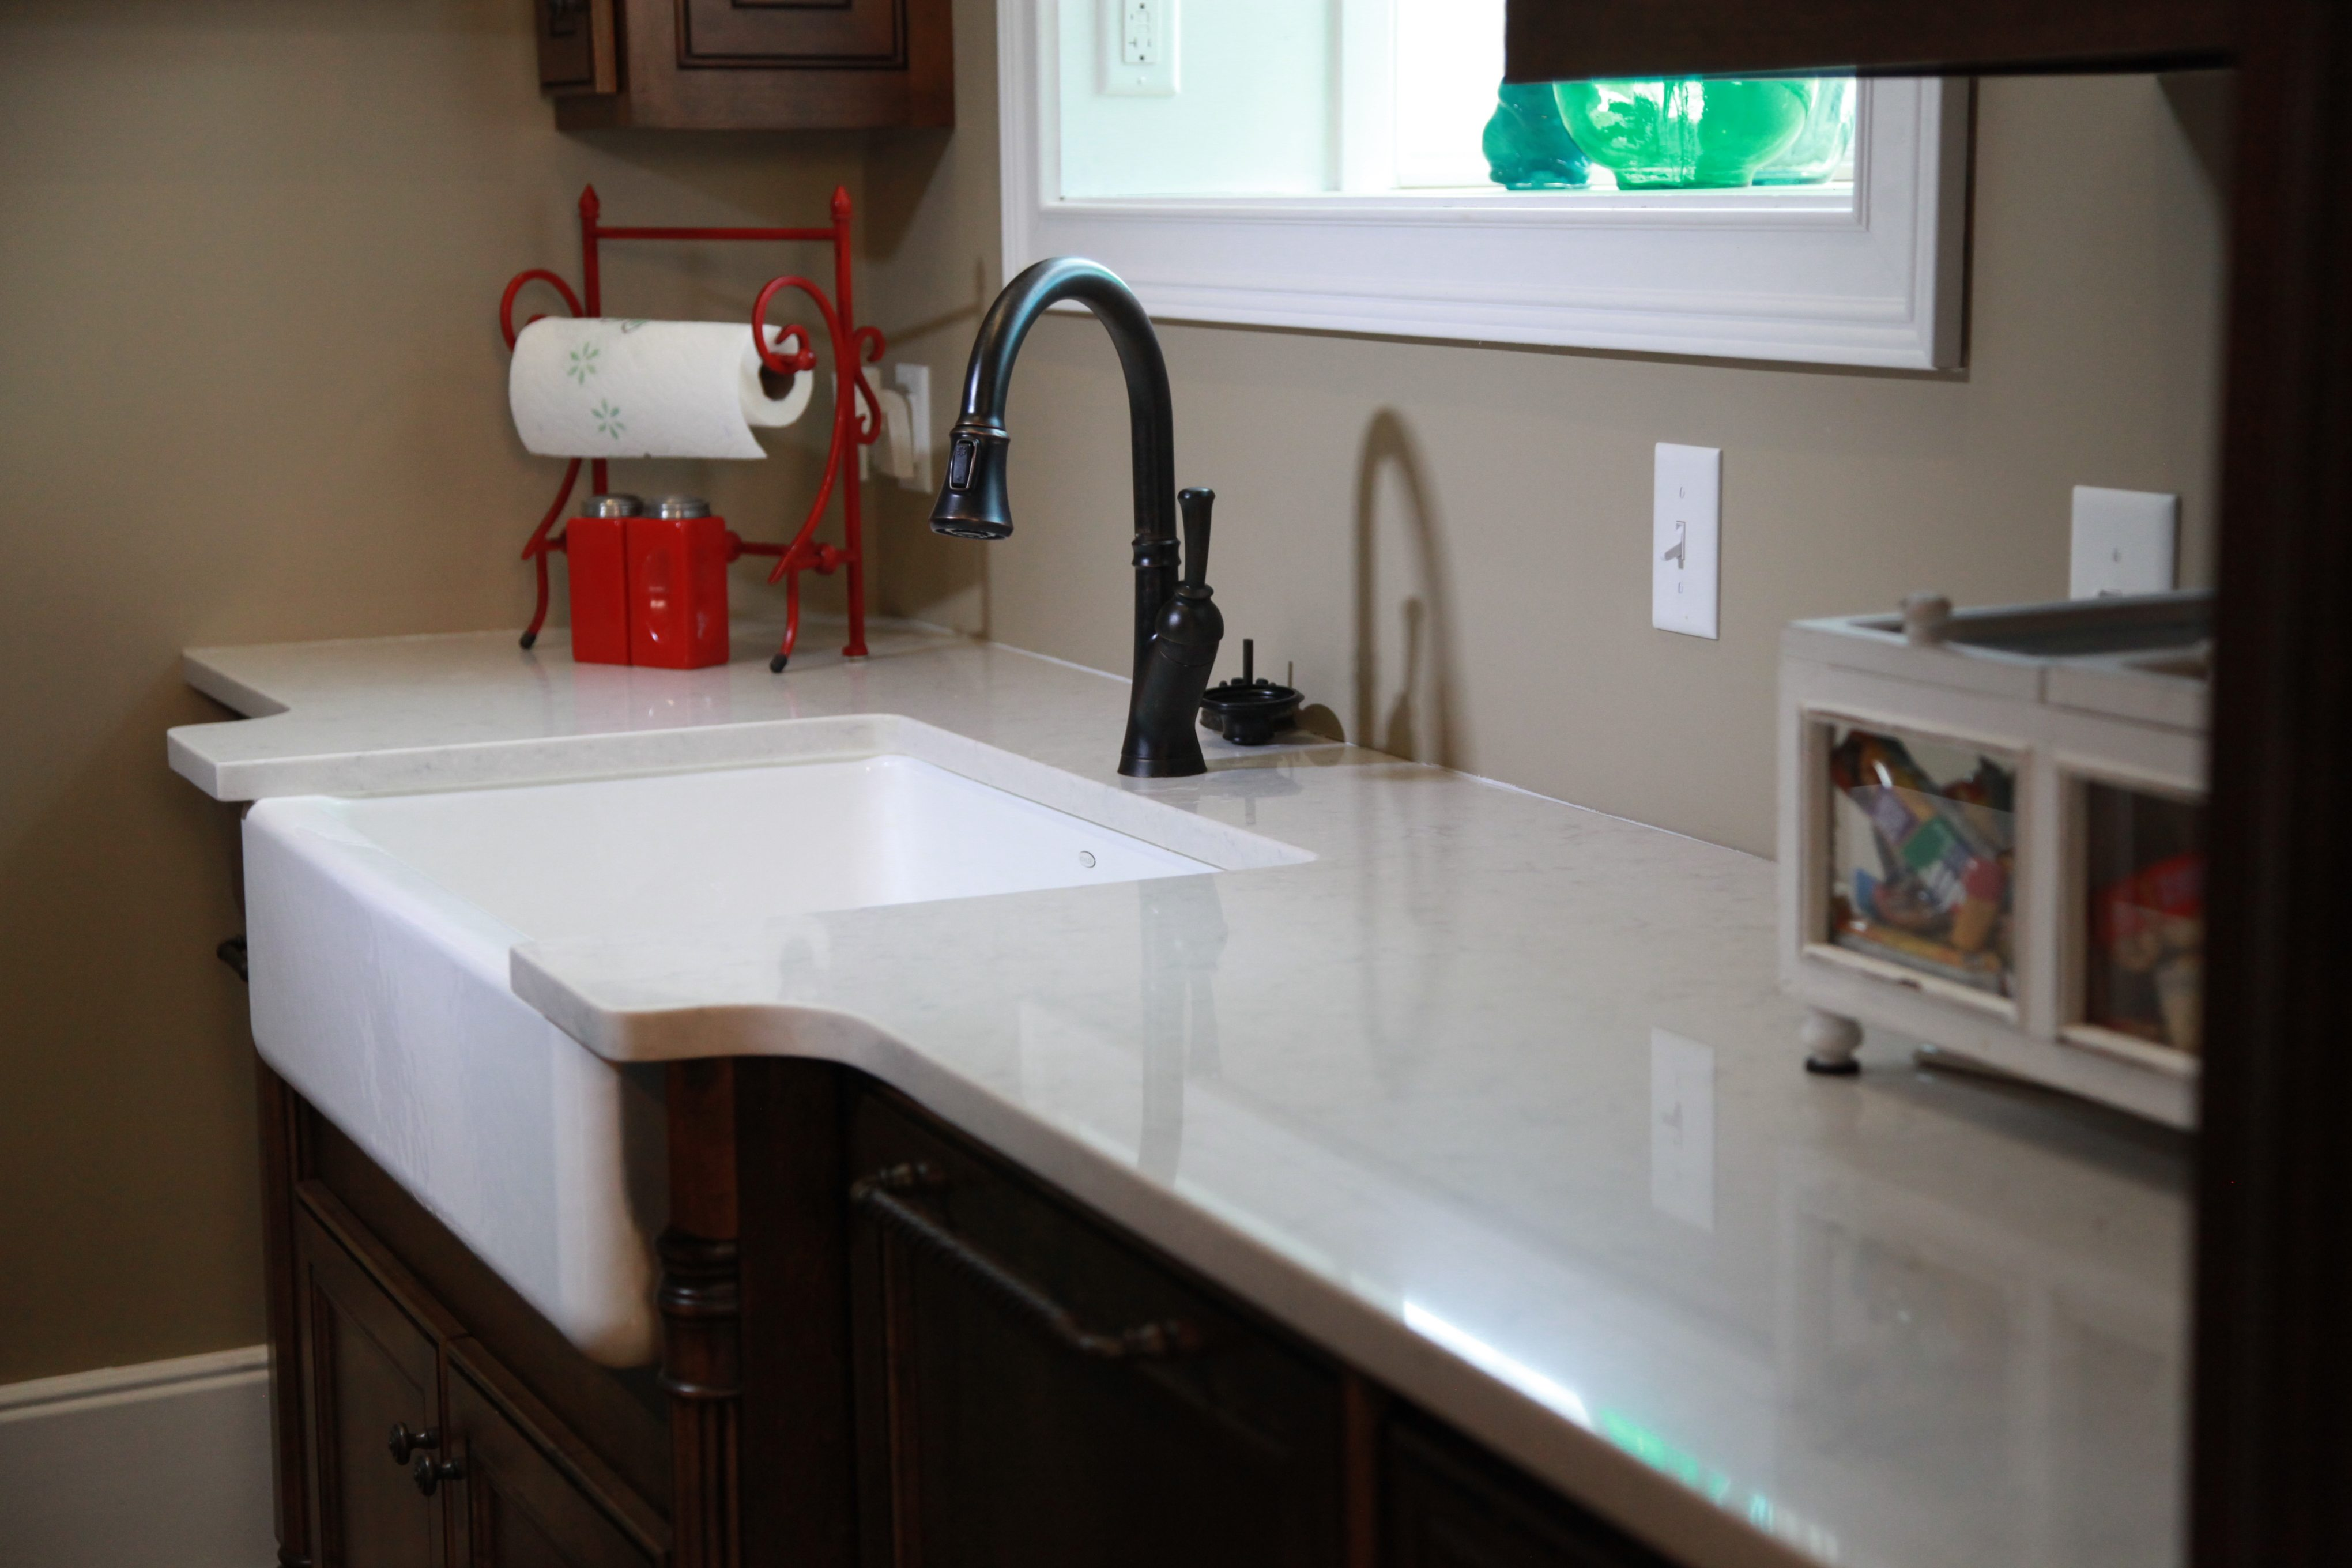 care or spills eselect holes microscopic in as numerous pores stone countertops sometimes natural damaging naturally the seep allowing known to sealed also contains staining countertop